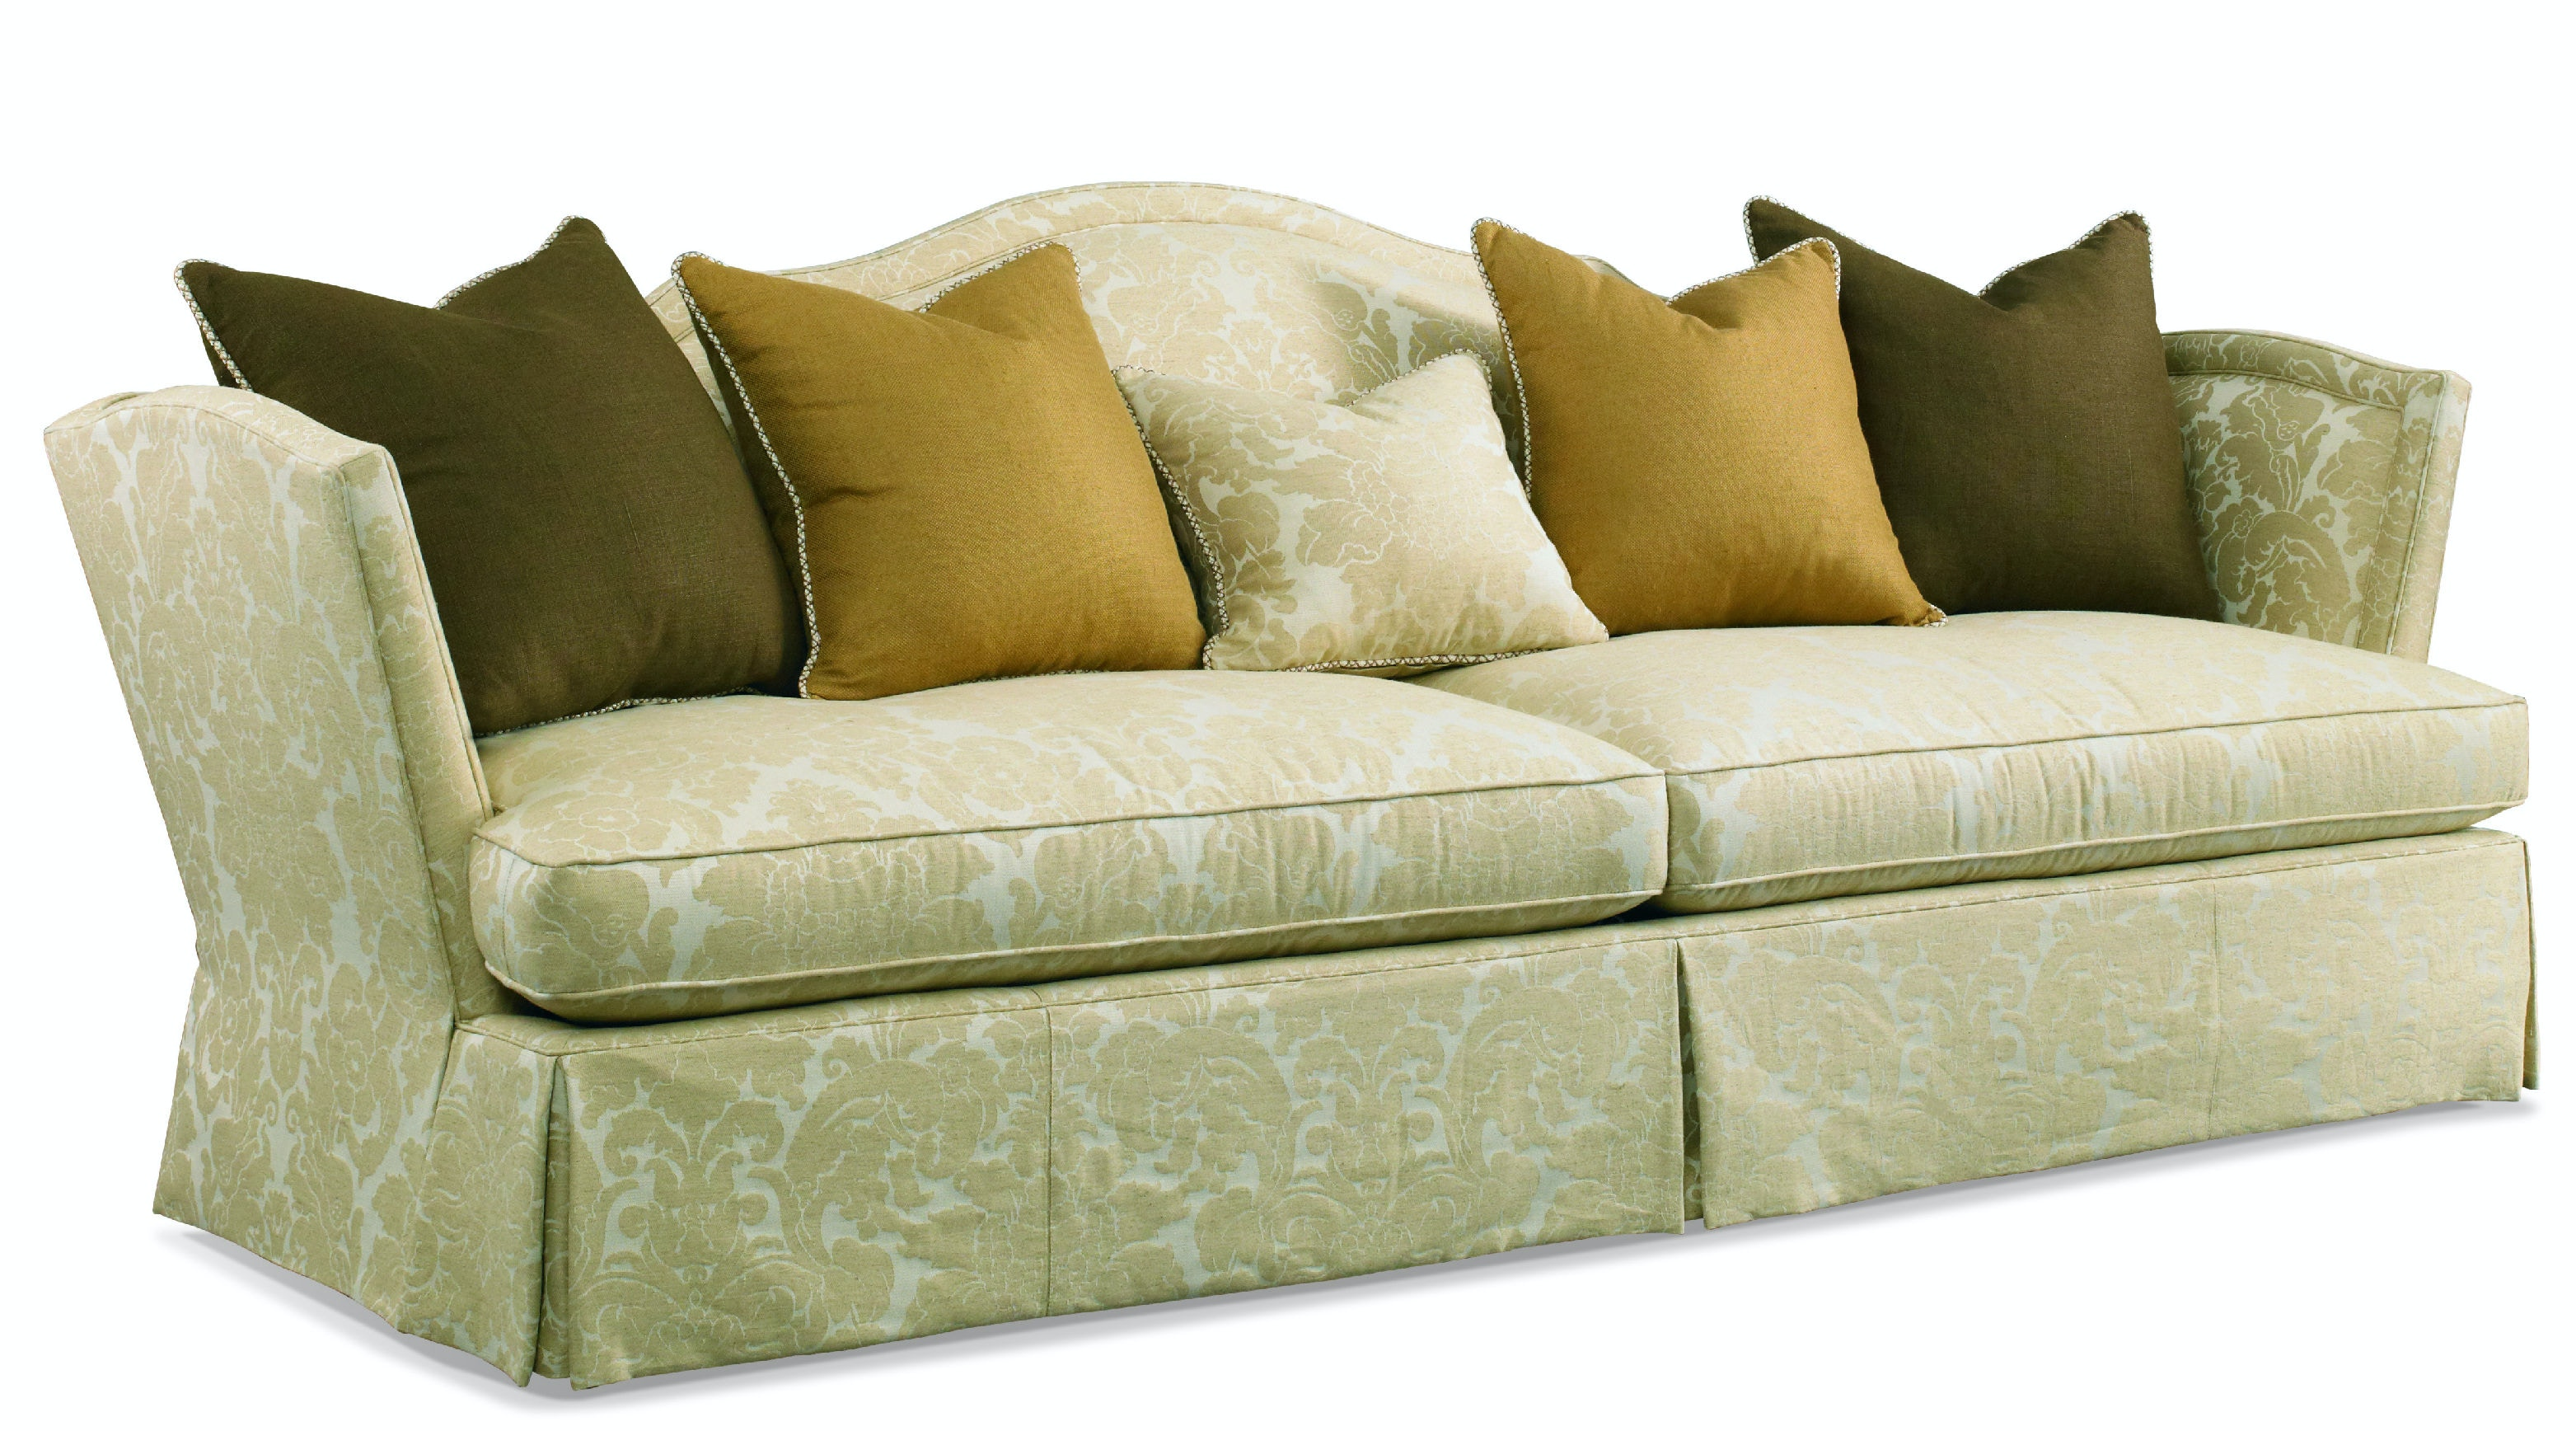 Hickory White Living Room Sofa 4698 05 At Louis Shanks